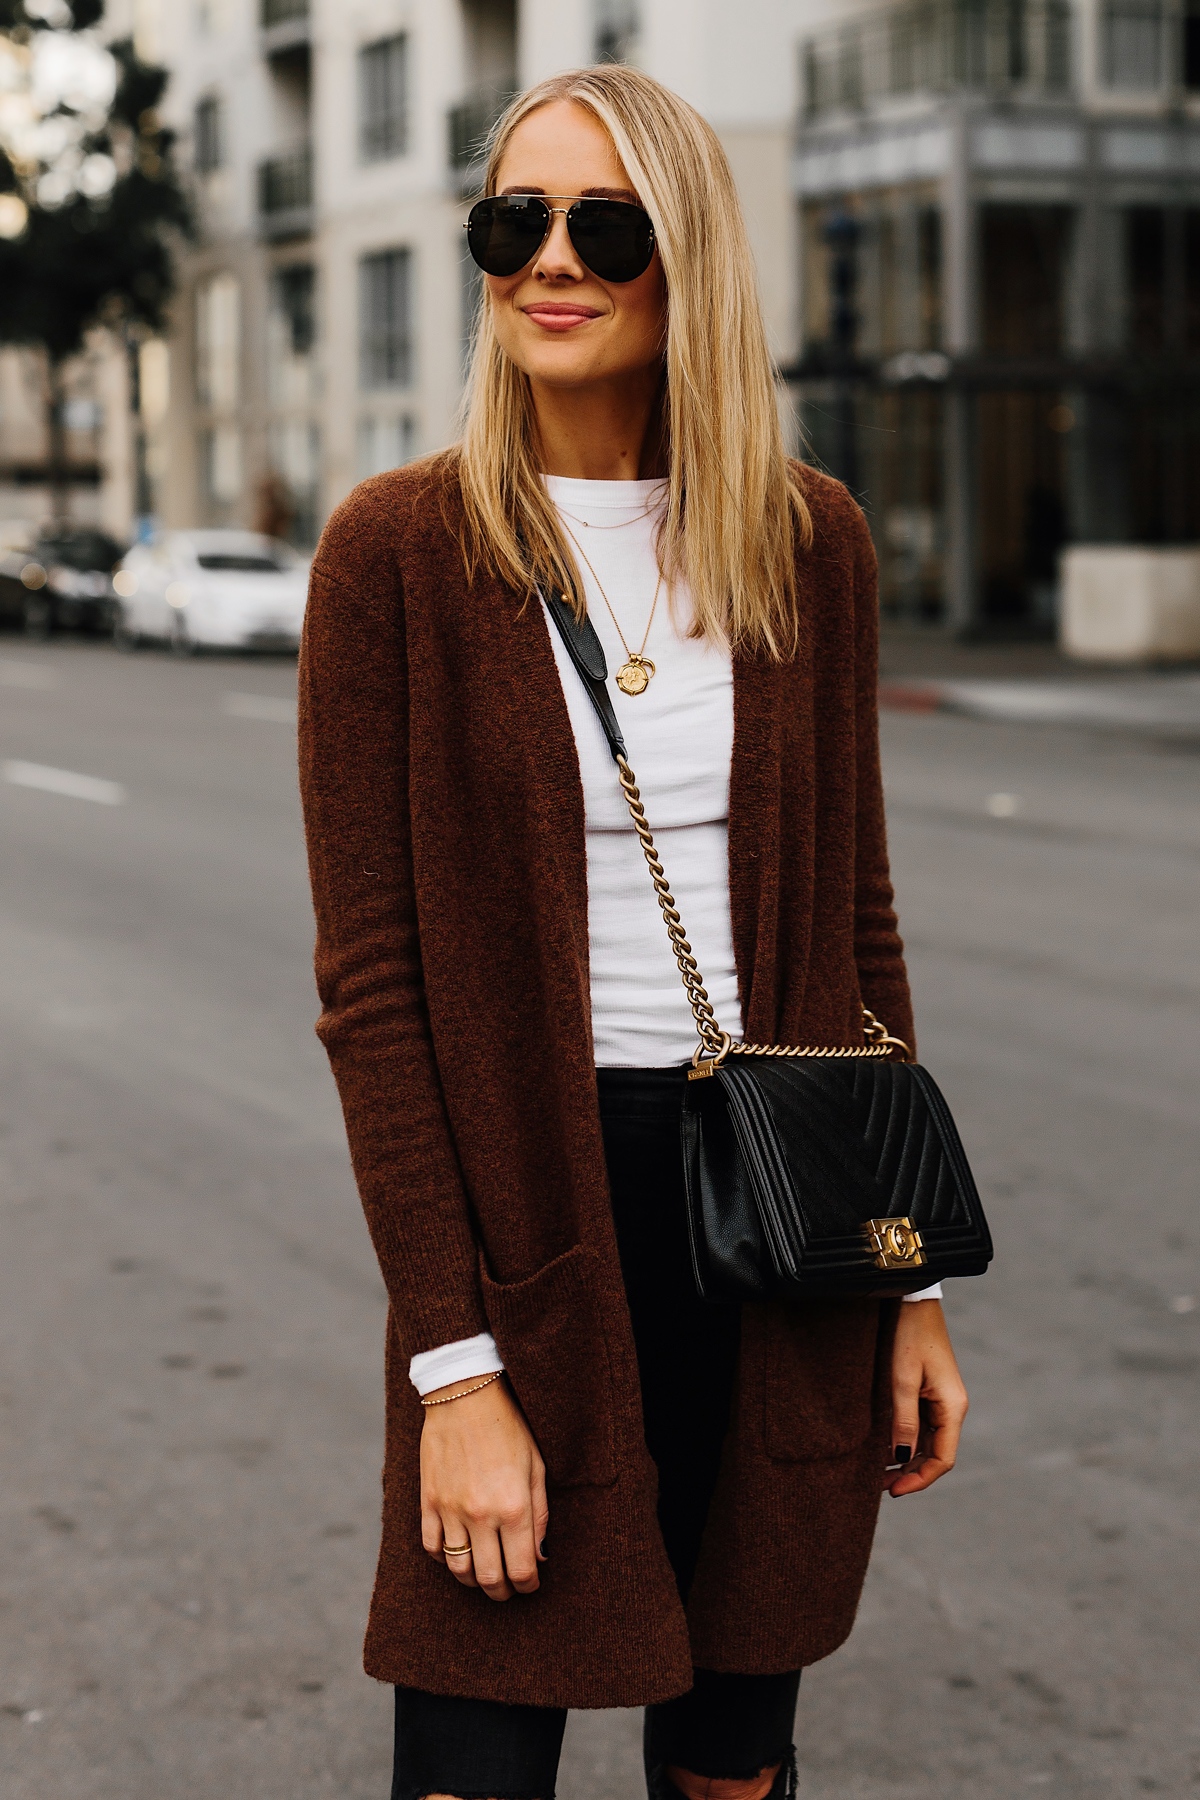 Blonde Woman Wearing Madewell Brown Long Cardigan White Top Black Ripped Skinny Jeans Chanel Black Boy Bag Aviator Sunglasses Fashion Jackson San Diego Fashion Blogger Street Style